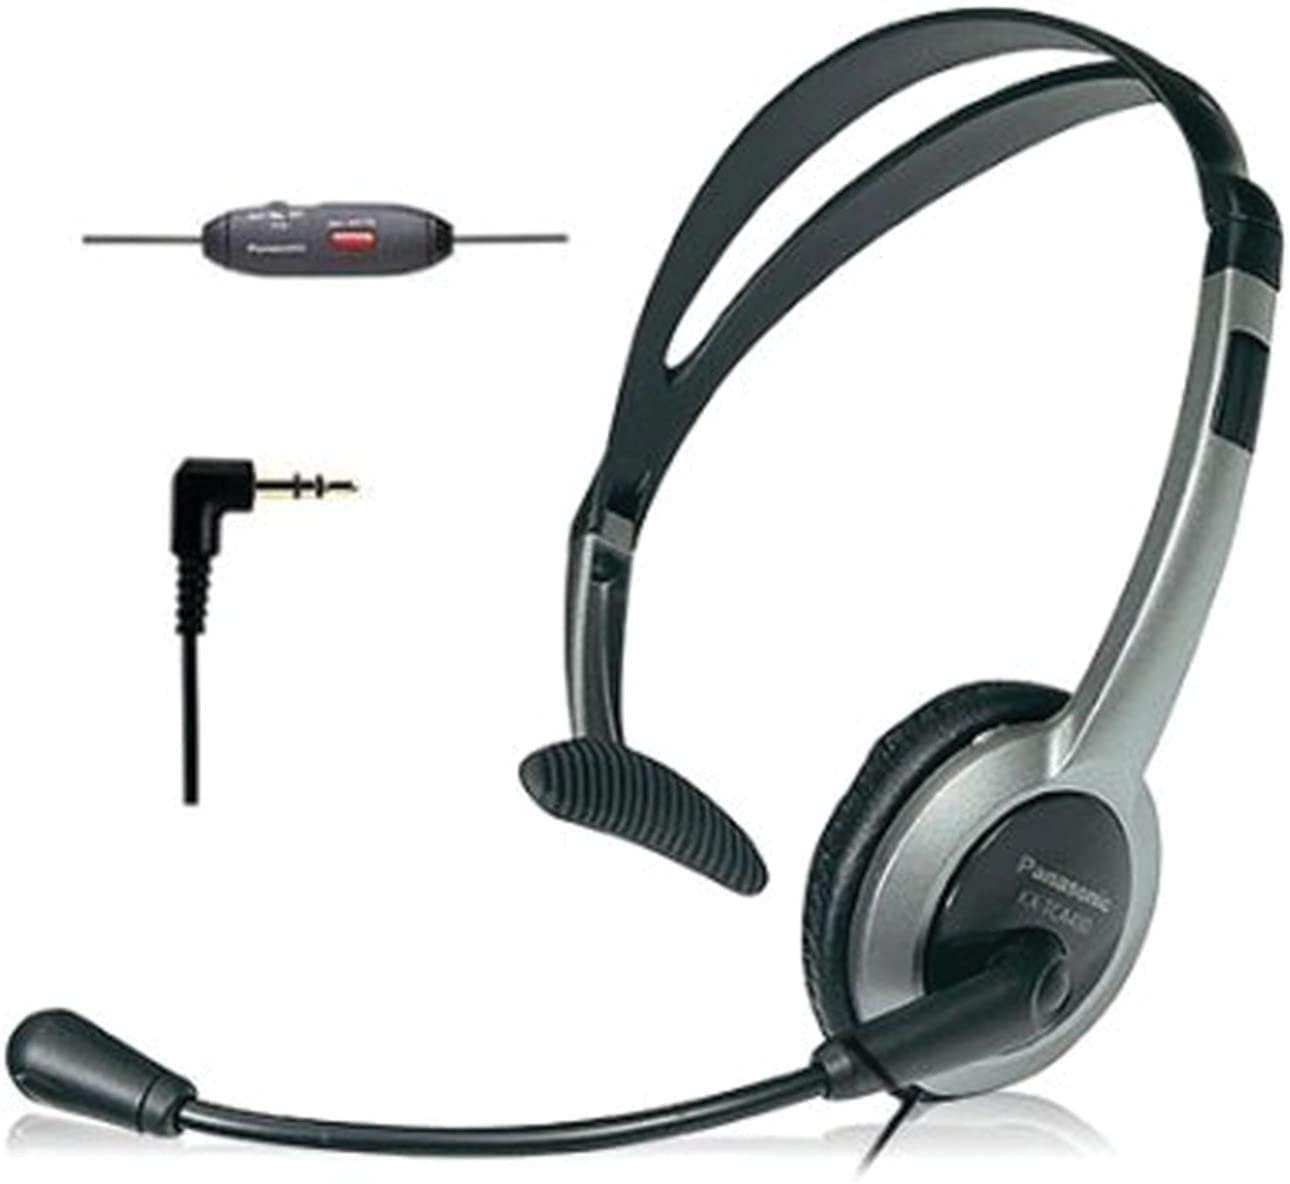 Panasonic - best headset for dictation